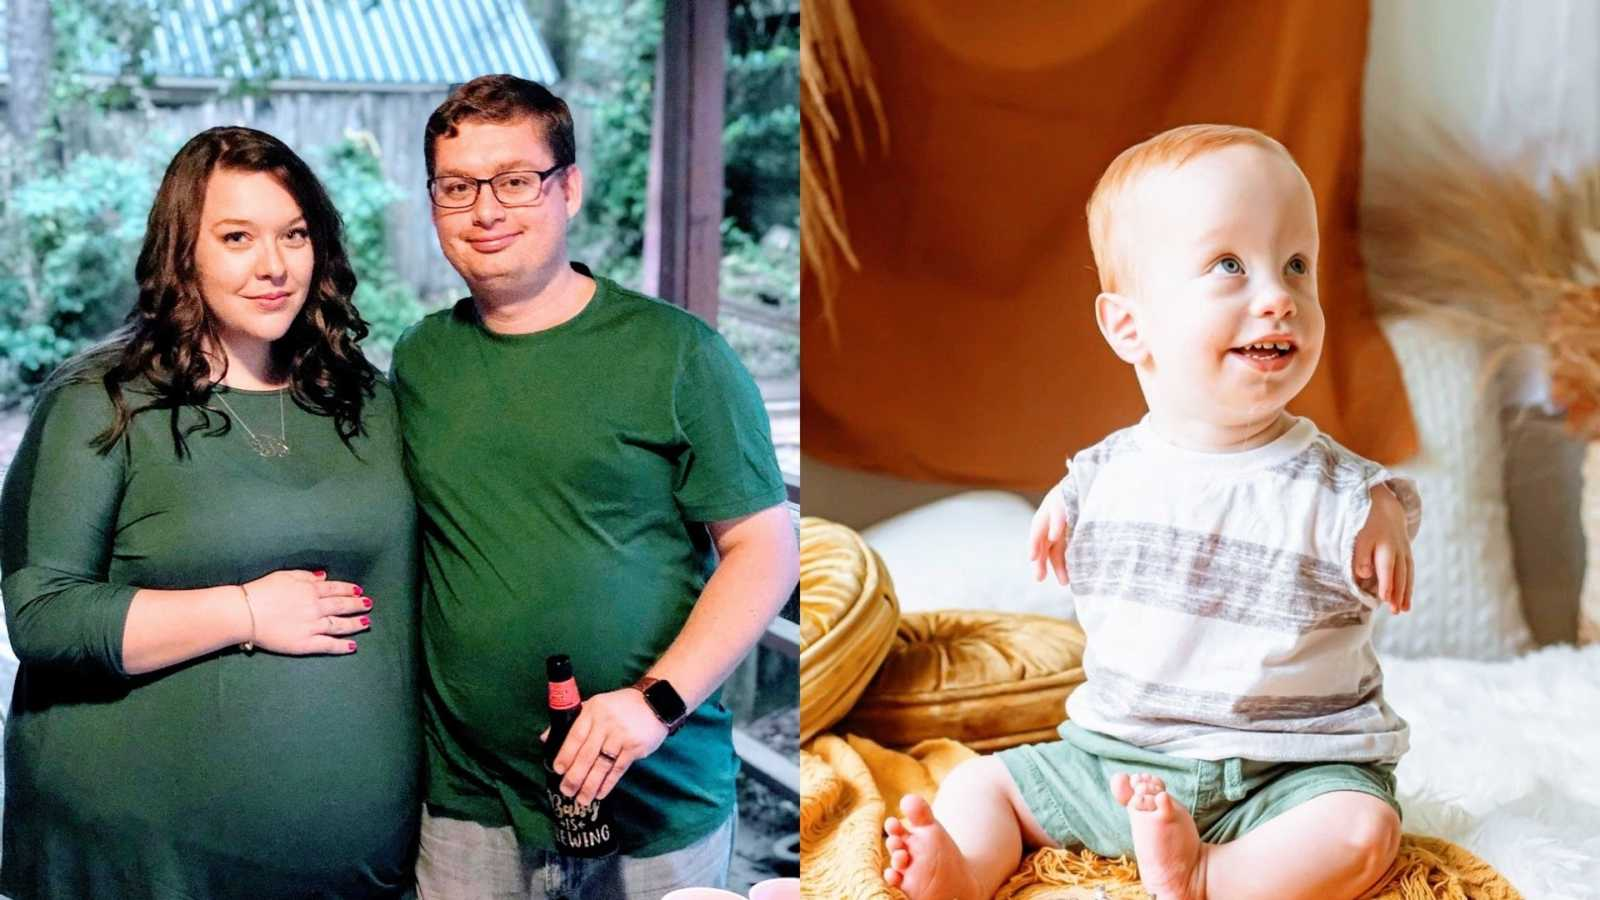 A pregnant woman and her husband wearing green and a baby with TAR Syndrome wearing a striped shirt